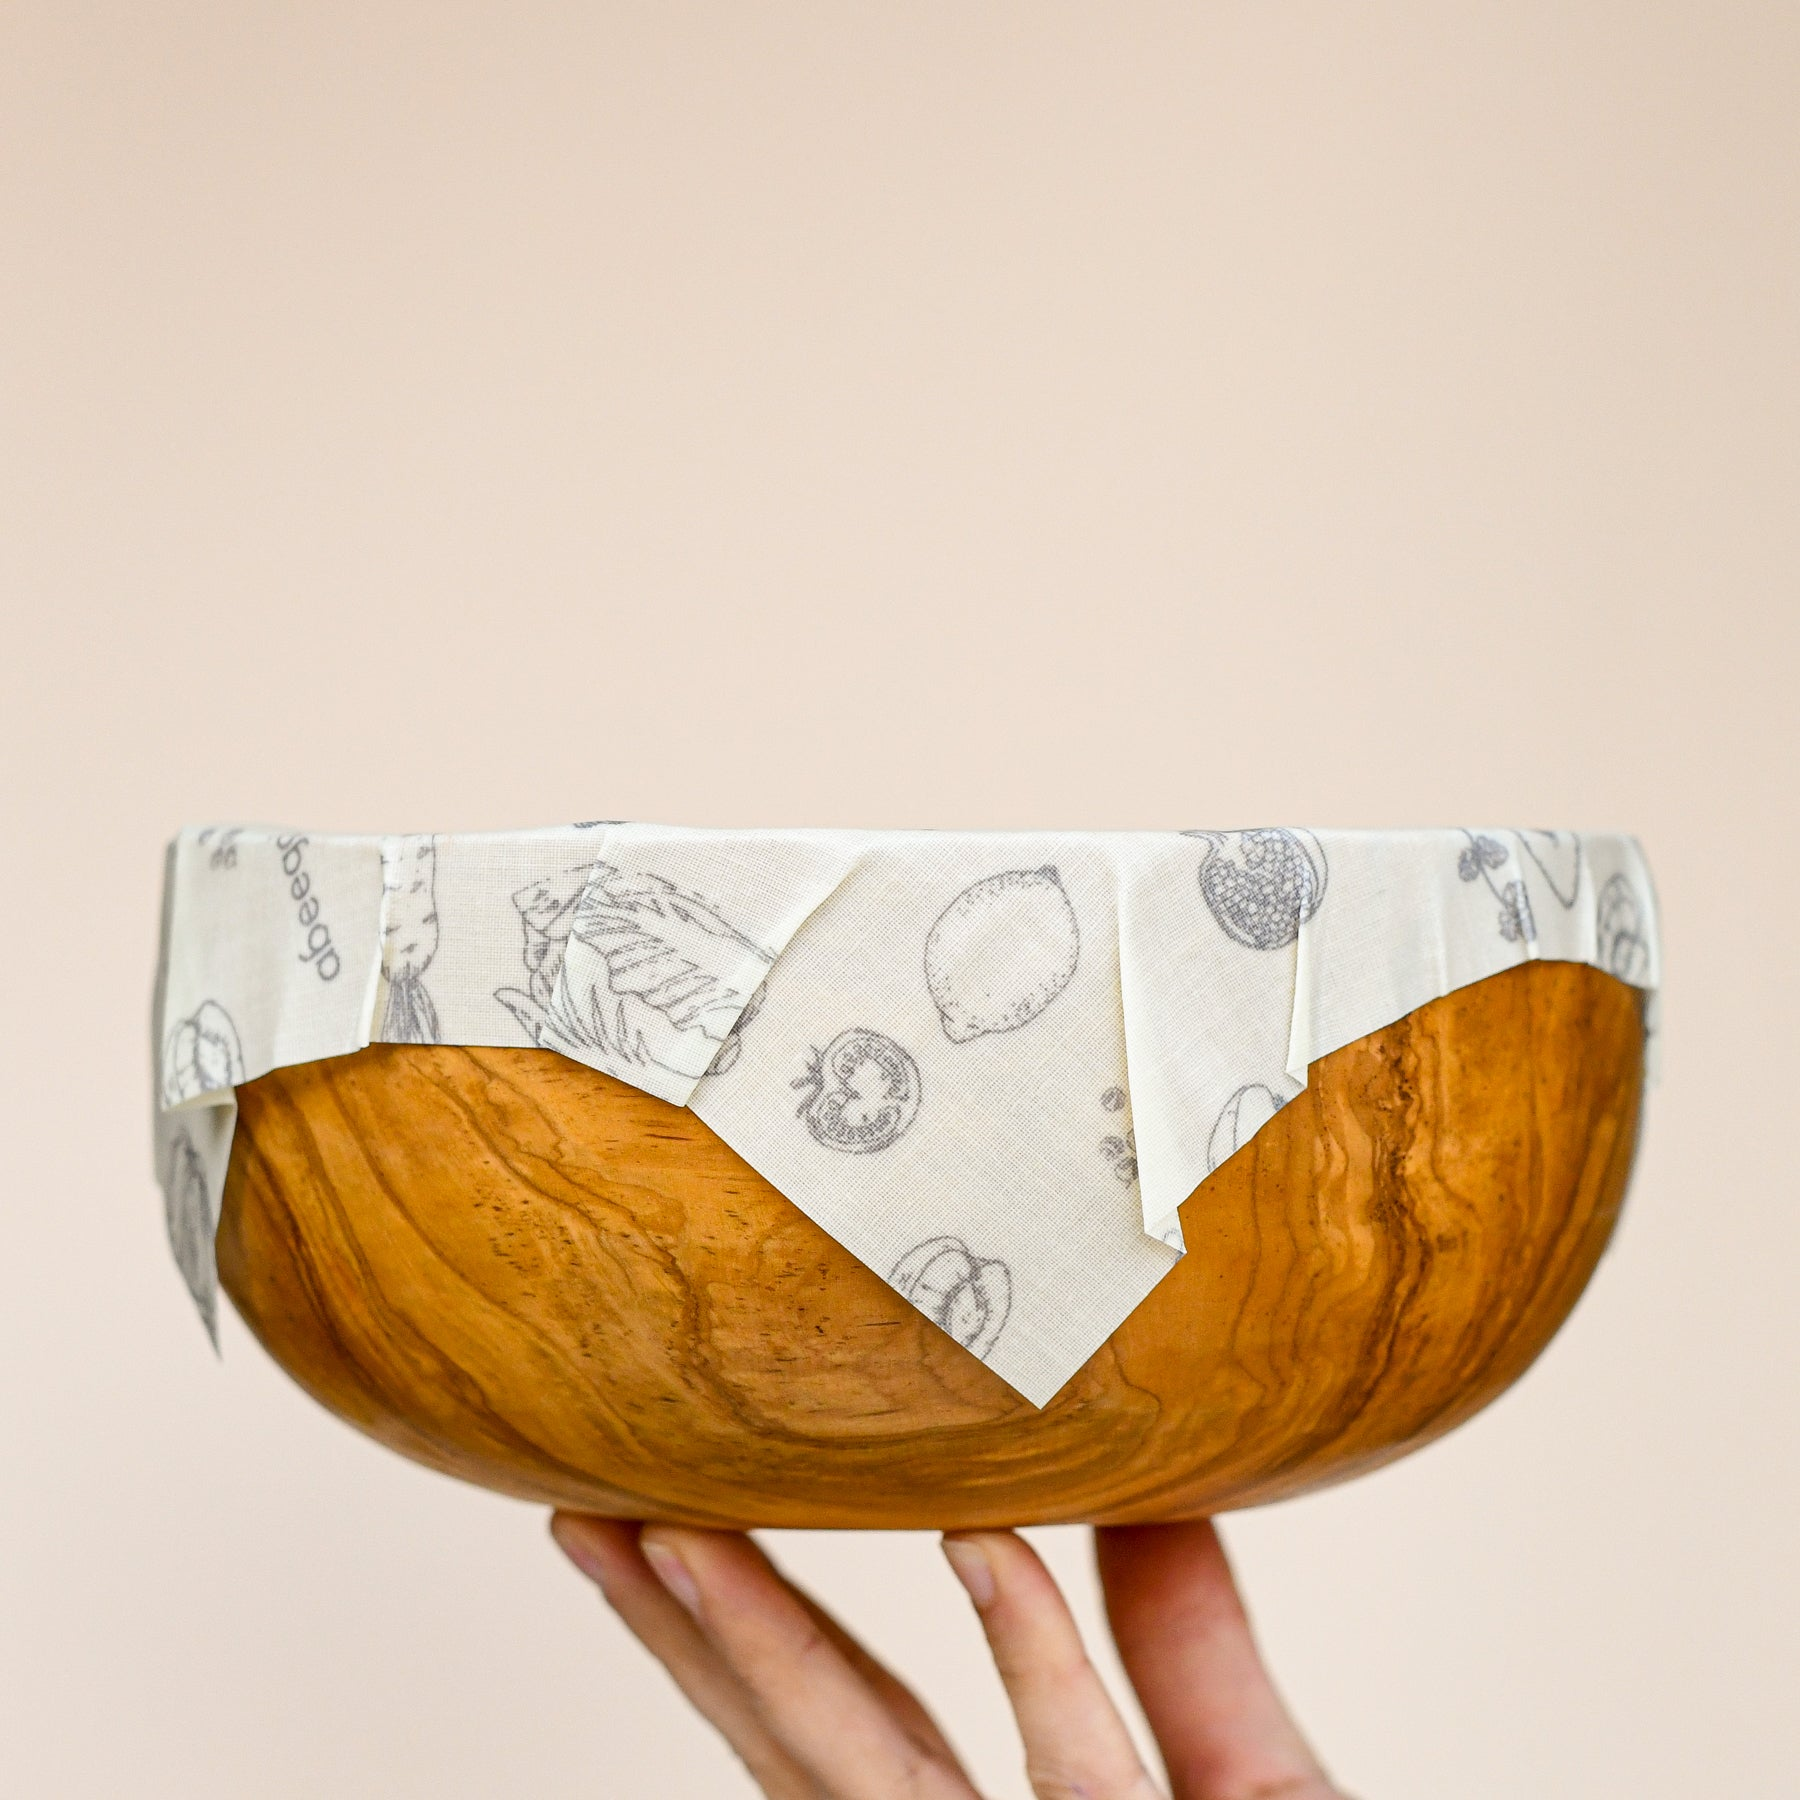 abeego beeswax wrap on bowl